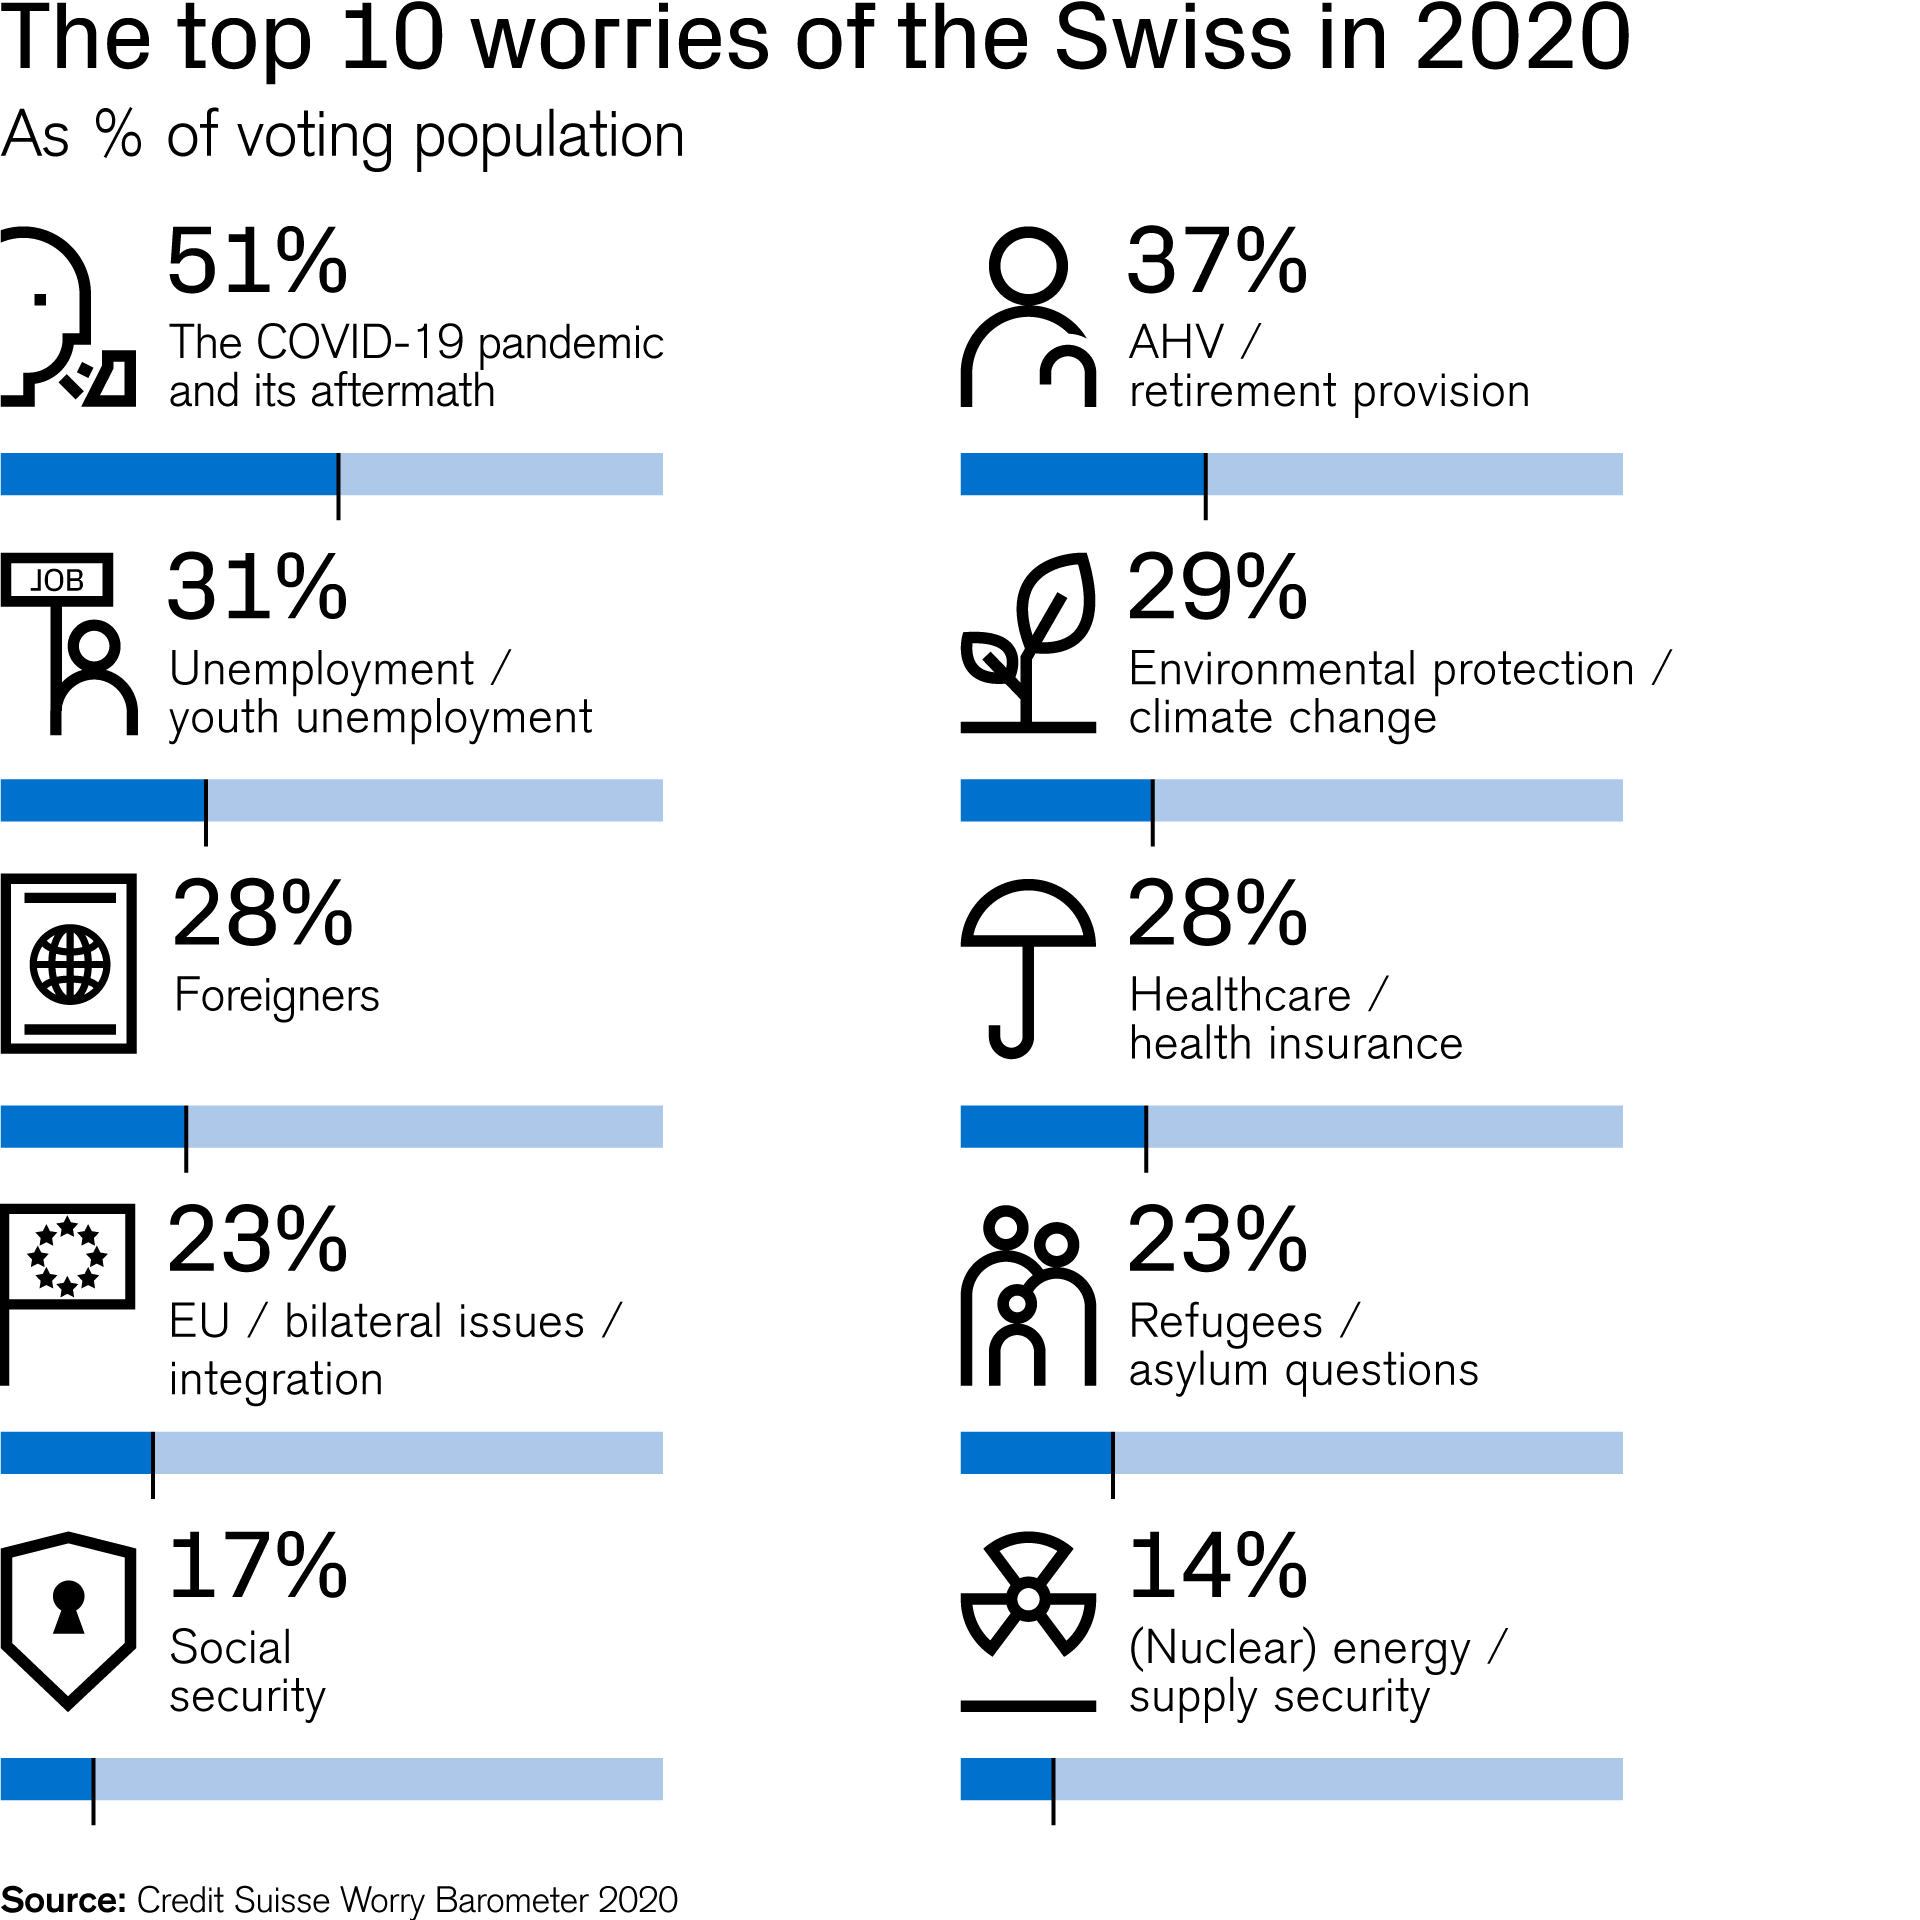 The top 10 worries of the Swiss in 2020